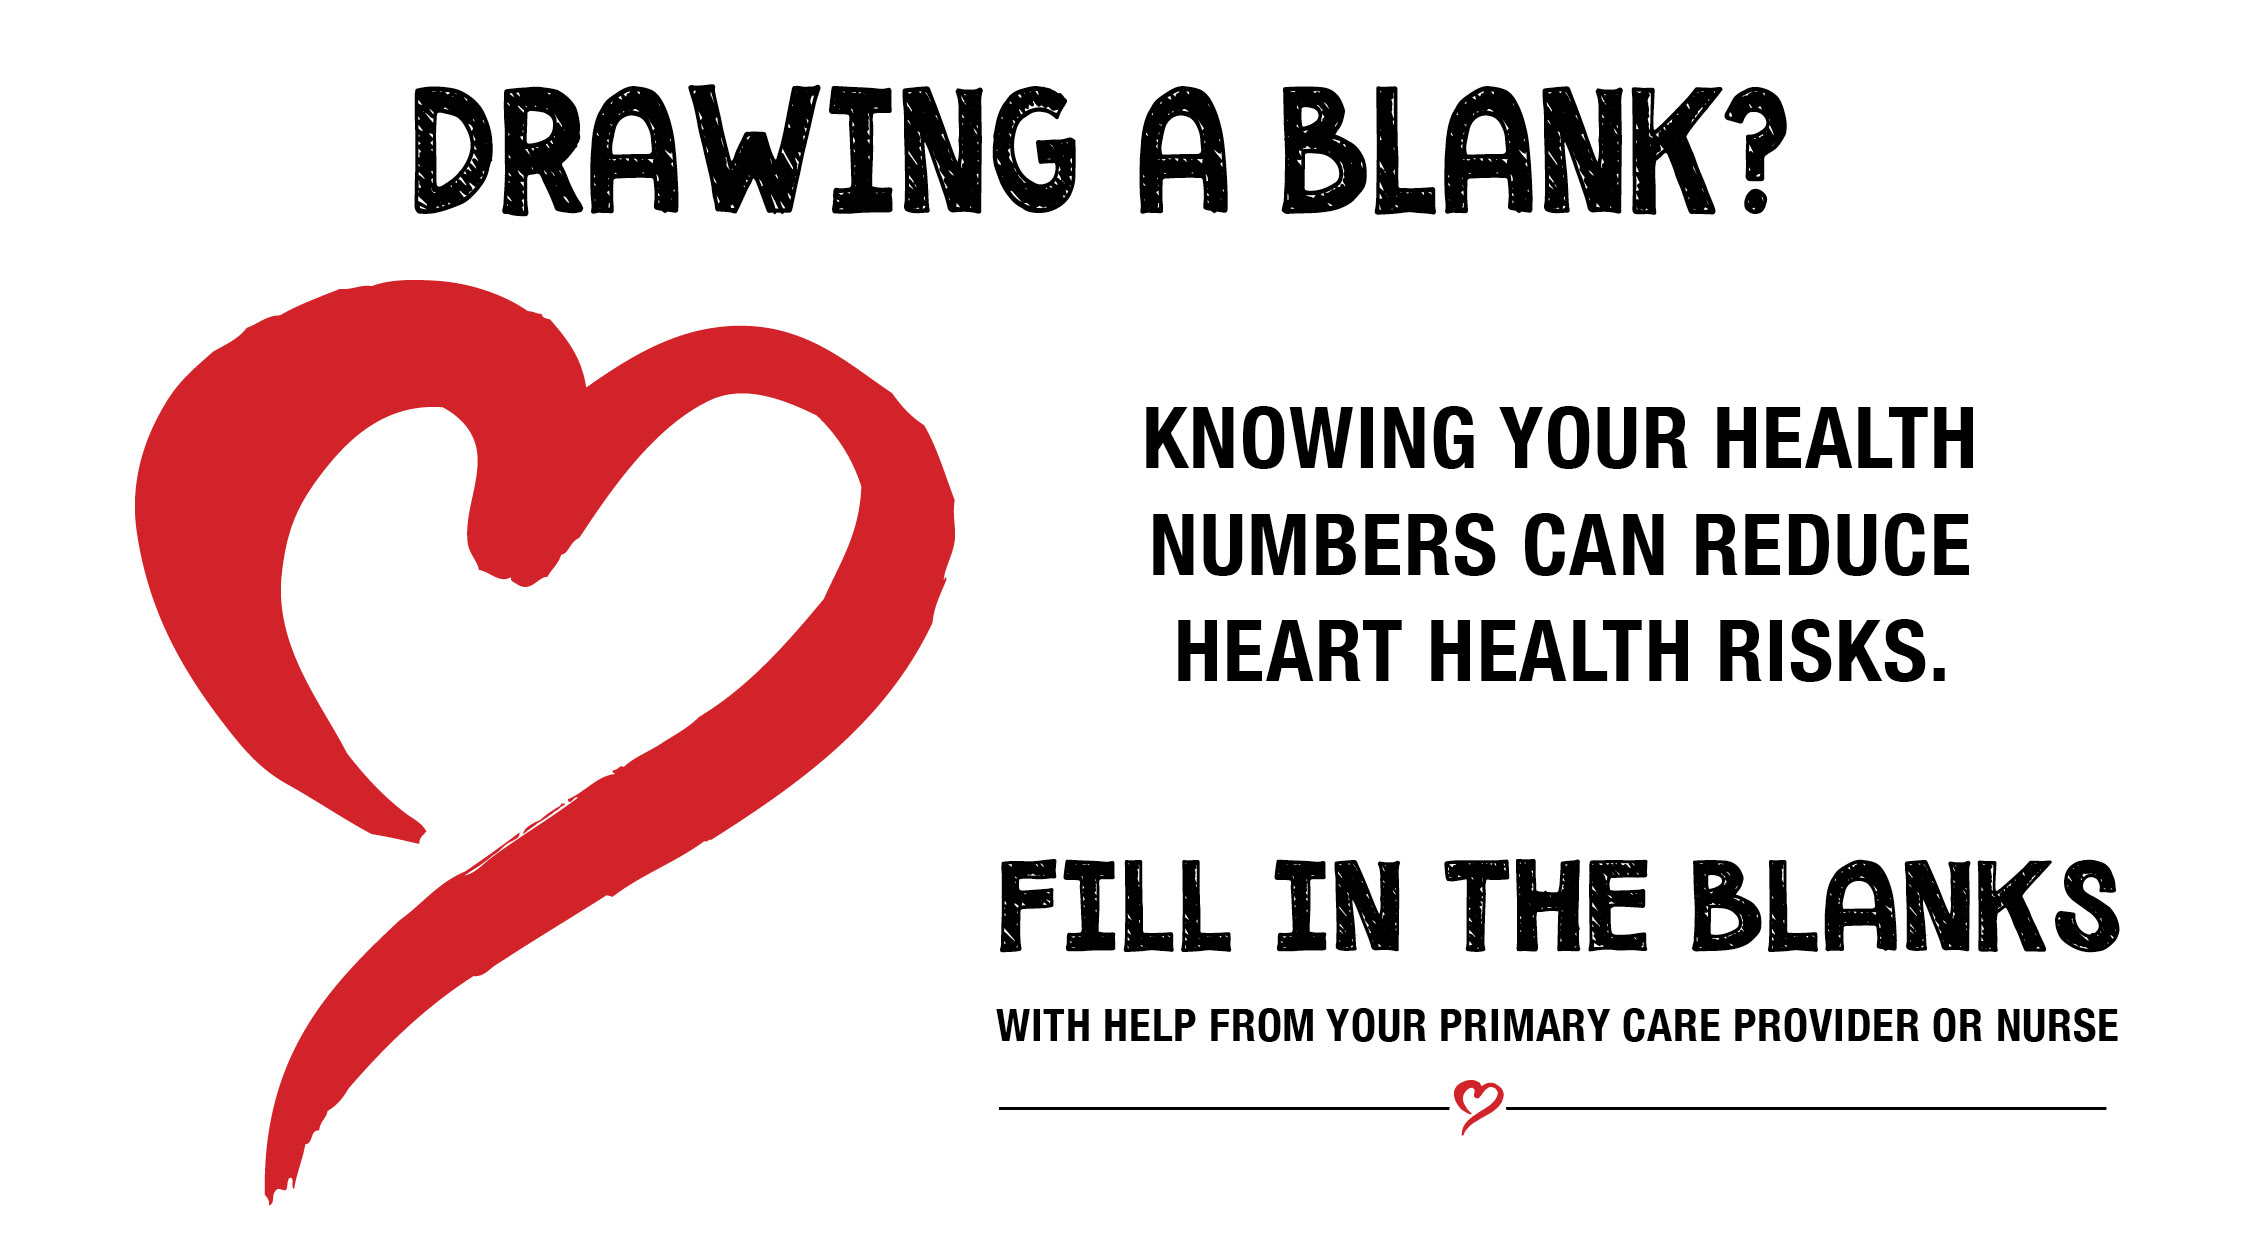 Drawing a blank? knowing your health numbers can reduce your heart health risks.